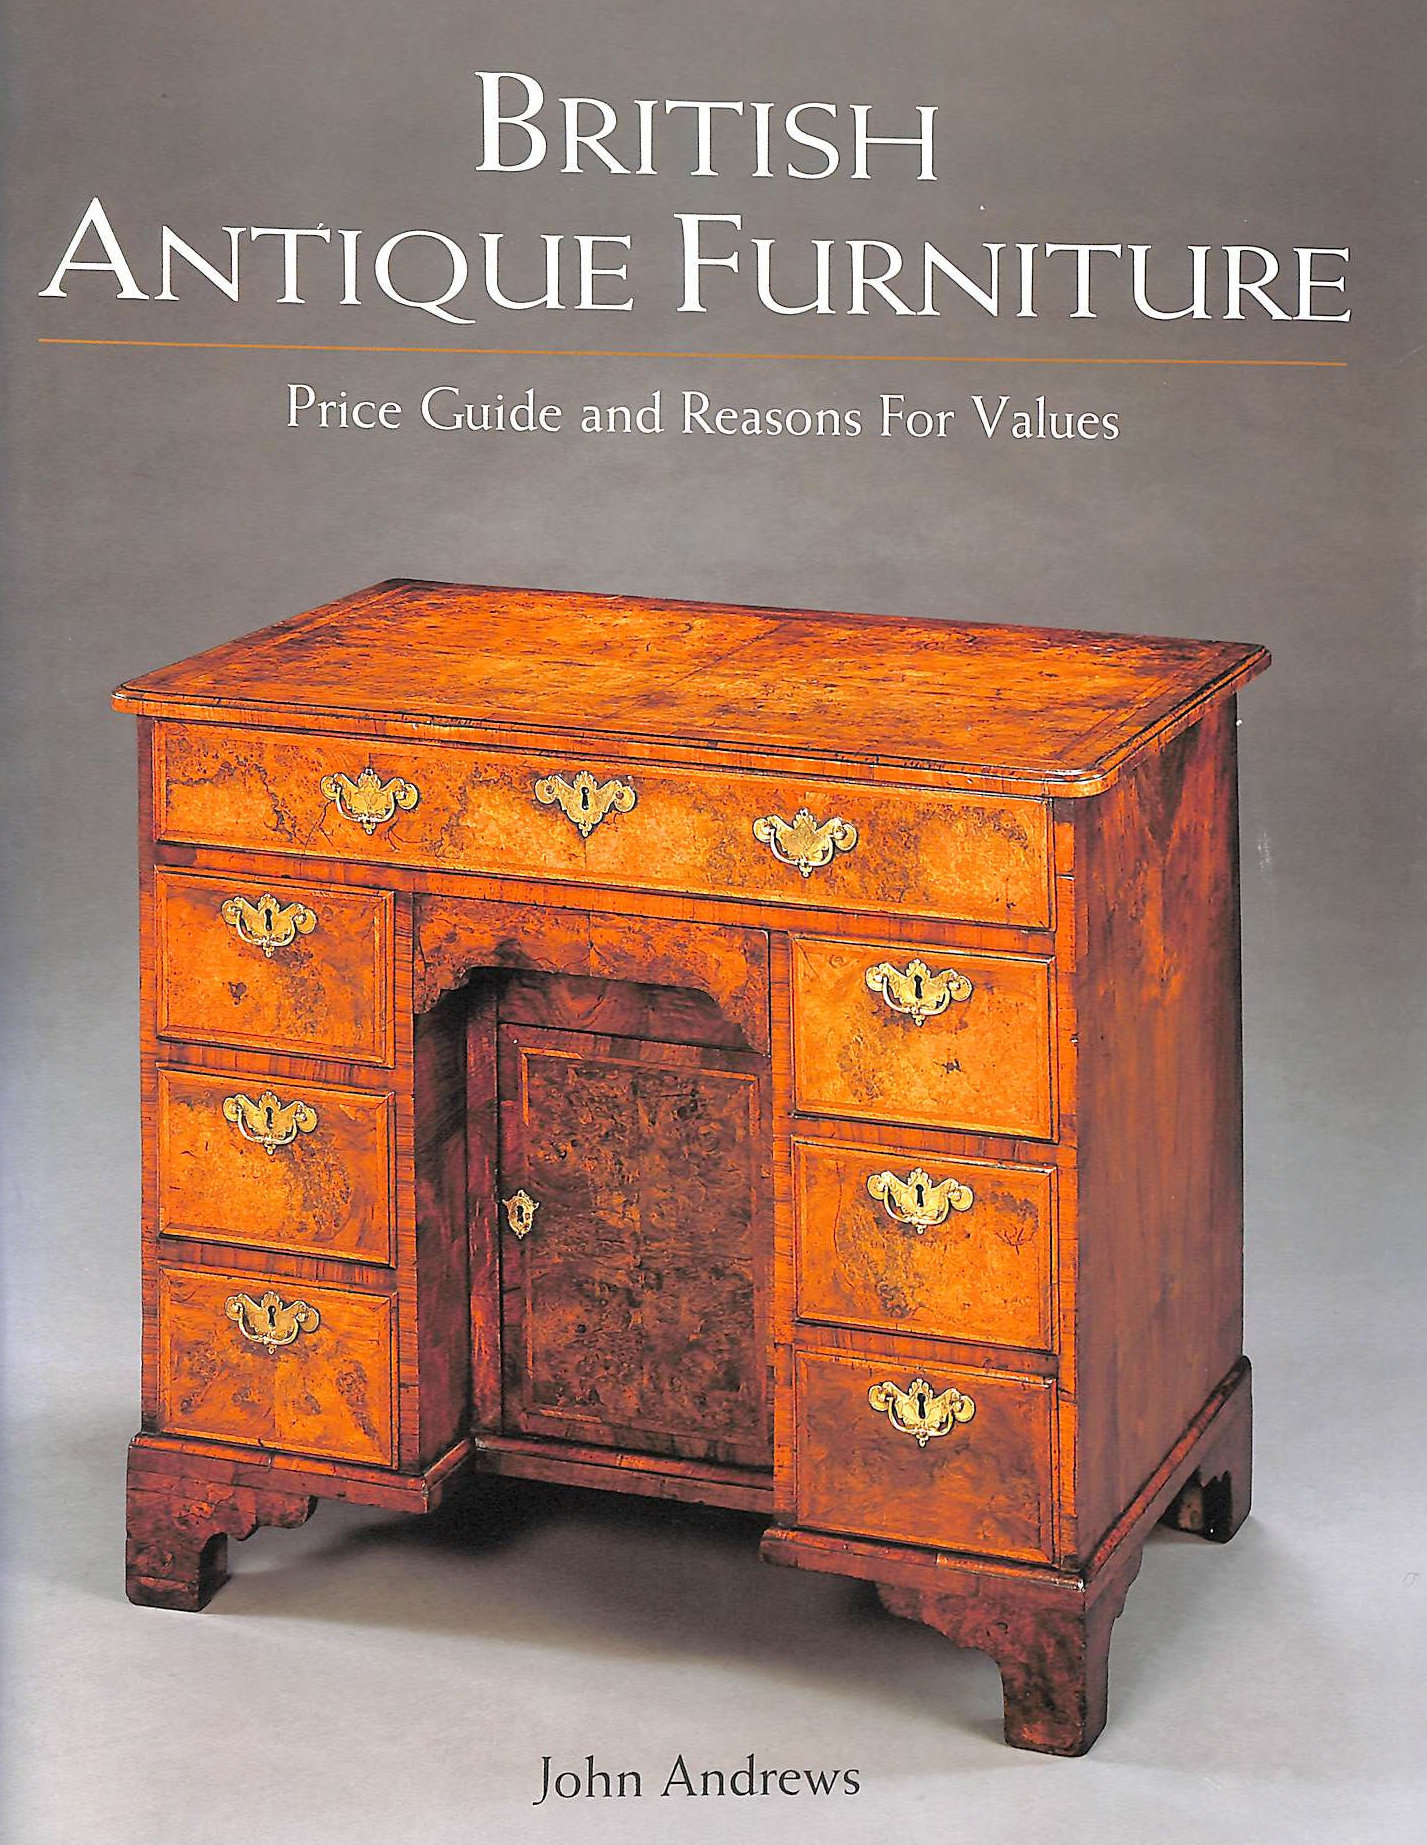 Image for British Antique Furniture 2001: Price Guide and Reasons for Values